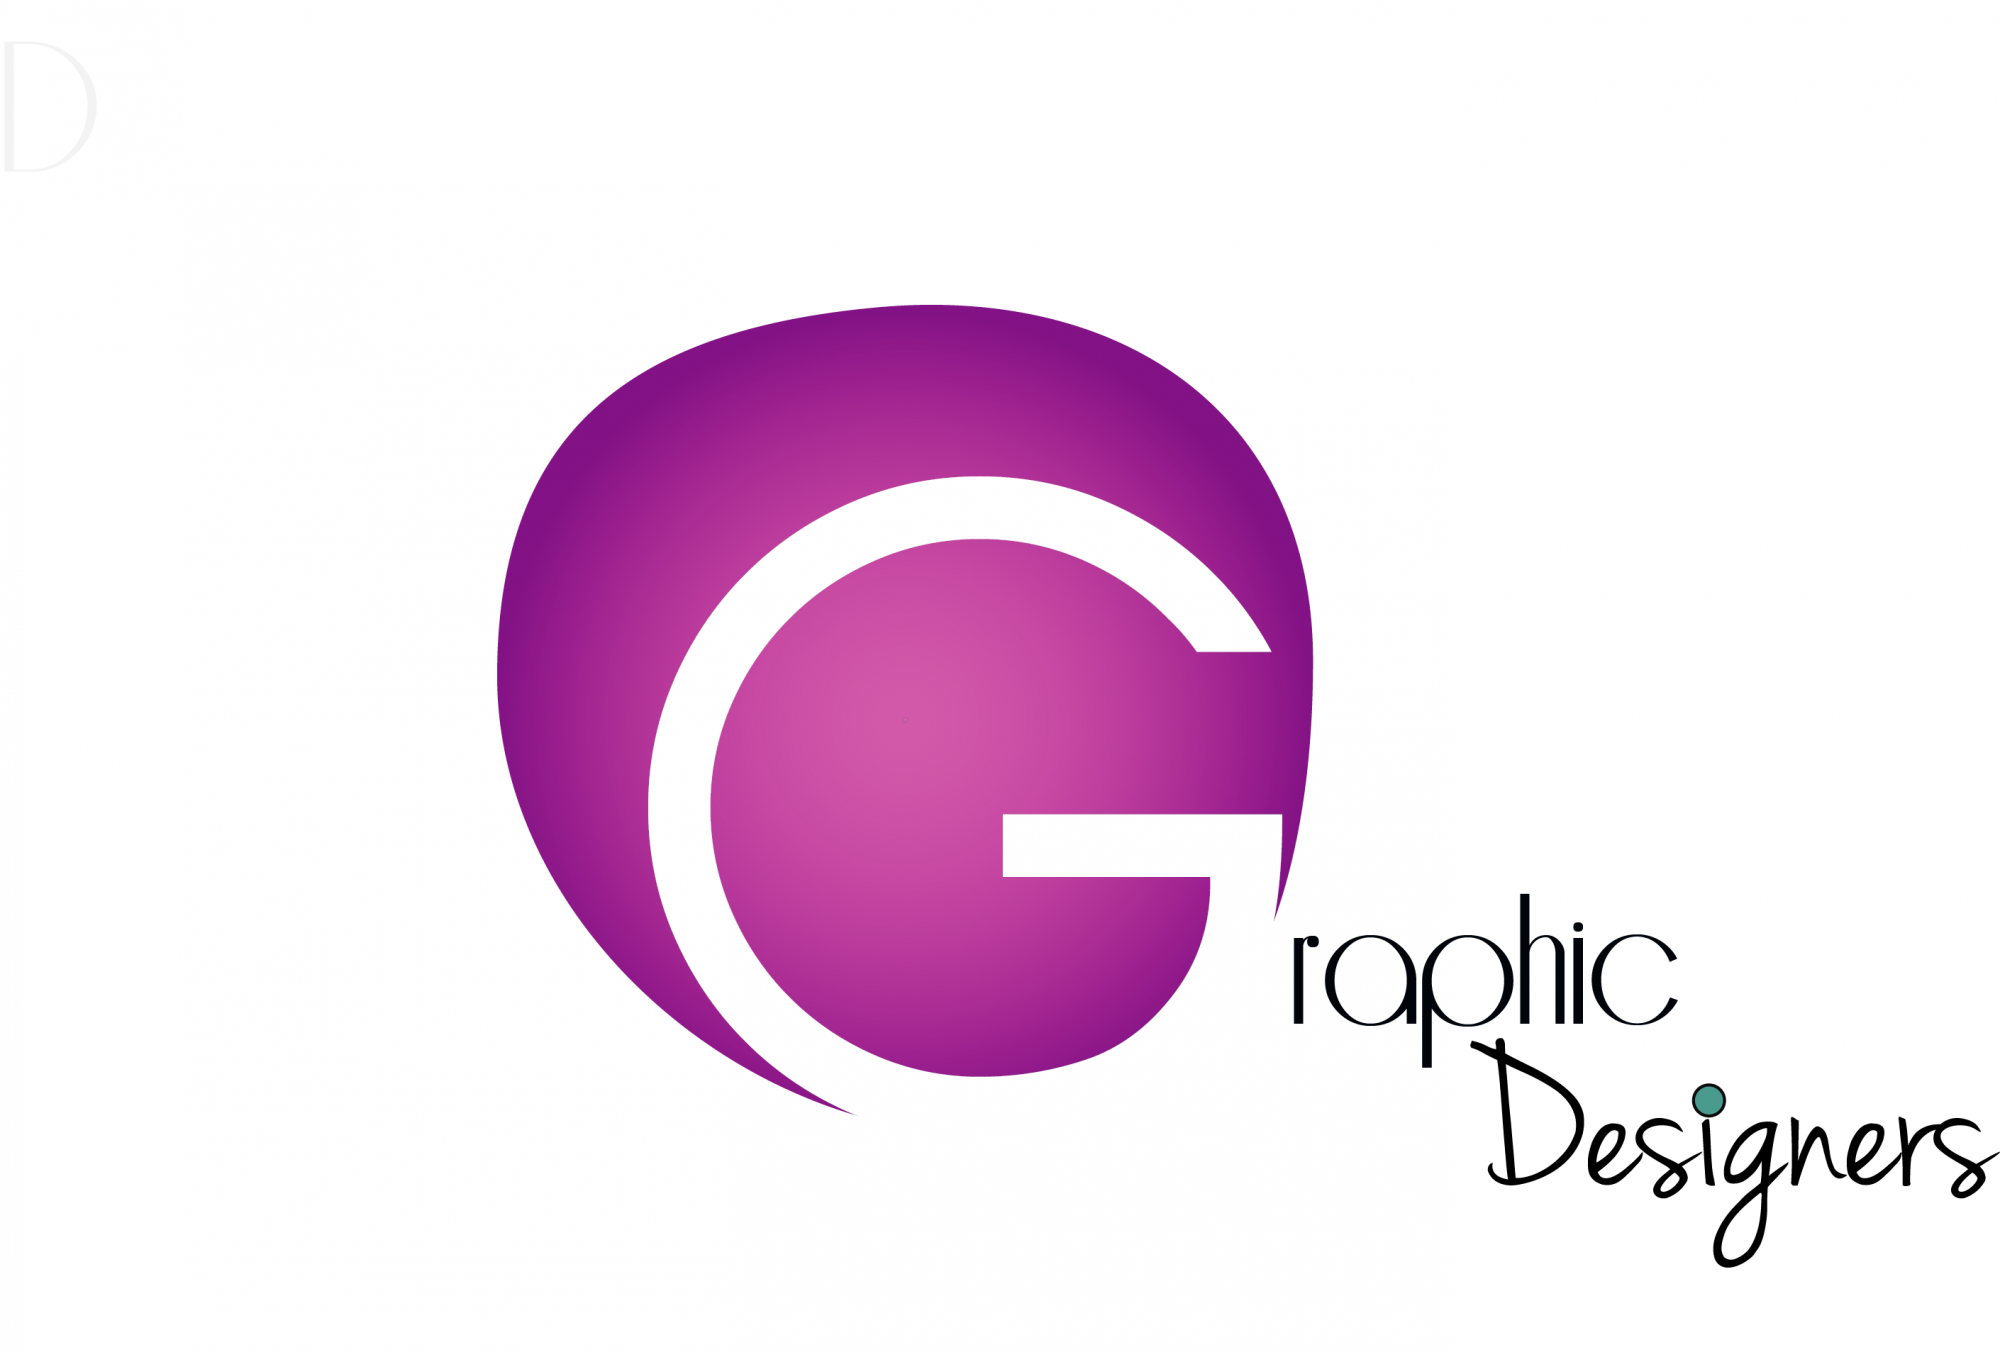 graphic design | Download vector logos and logotypes